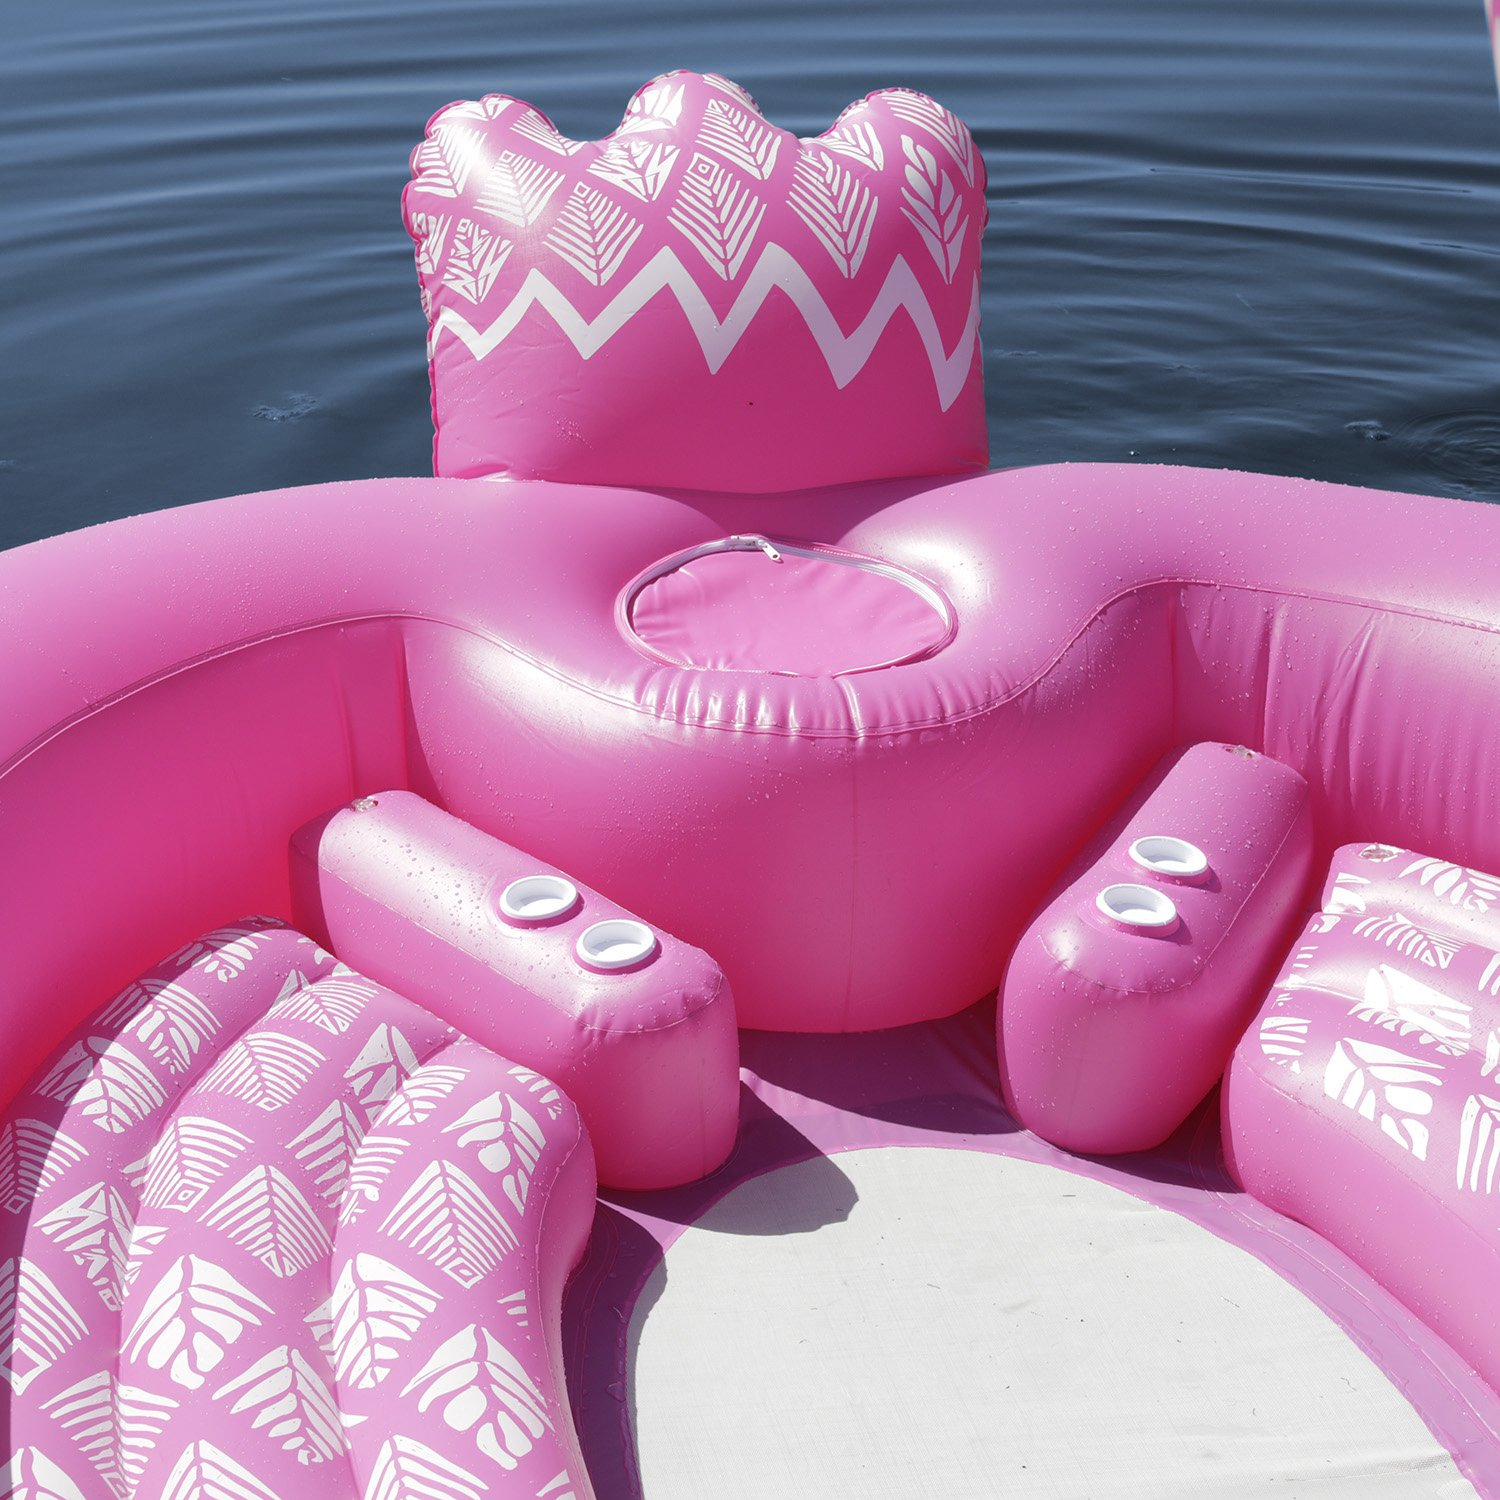 Sun Pleasure Party Bird Island Giant Flamingo Float - Fast Speed Pump Included - Flamingo with Pump and Carrying Bag - use in Lake, Ocean, River, Pool Floats for up to 6 People by Sun Pleasure (Image #4)